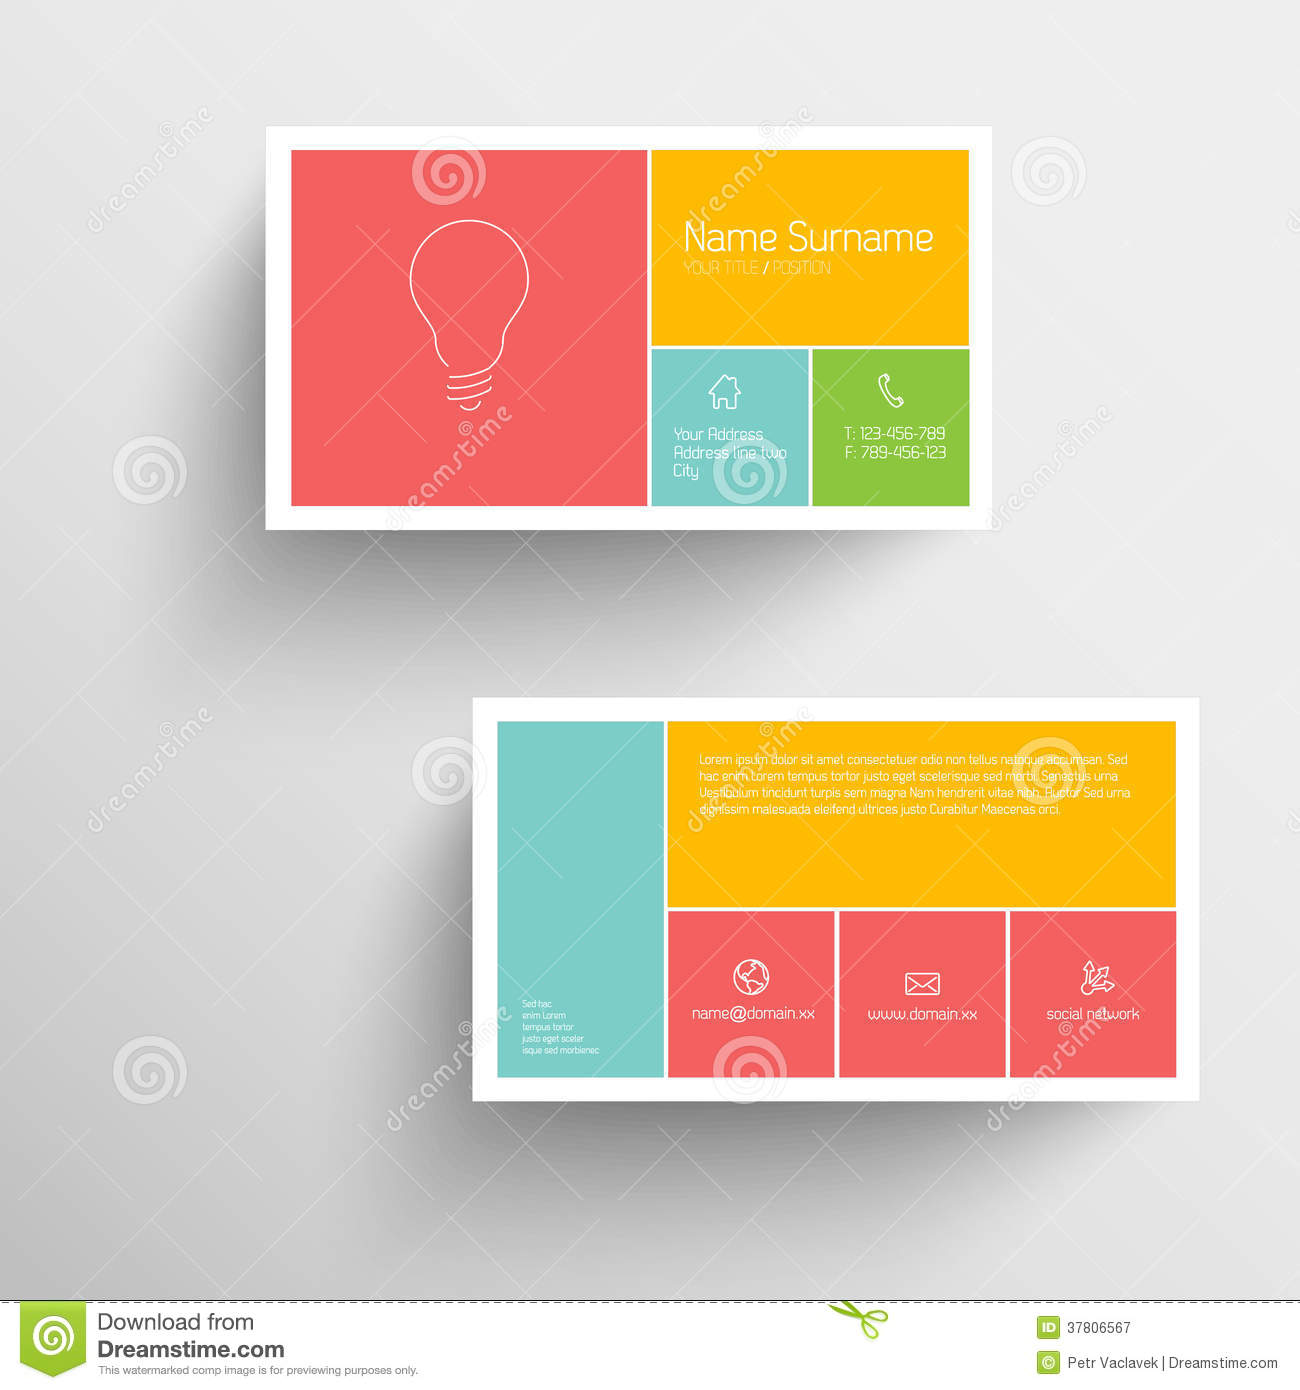 Modern business card template with flat mobile user interface modern business card template with flat mobile user interface colourmoves